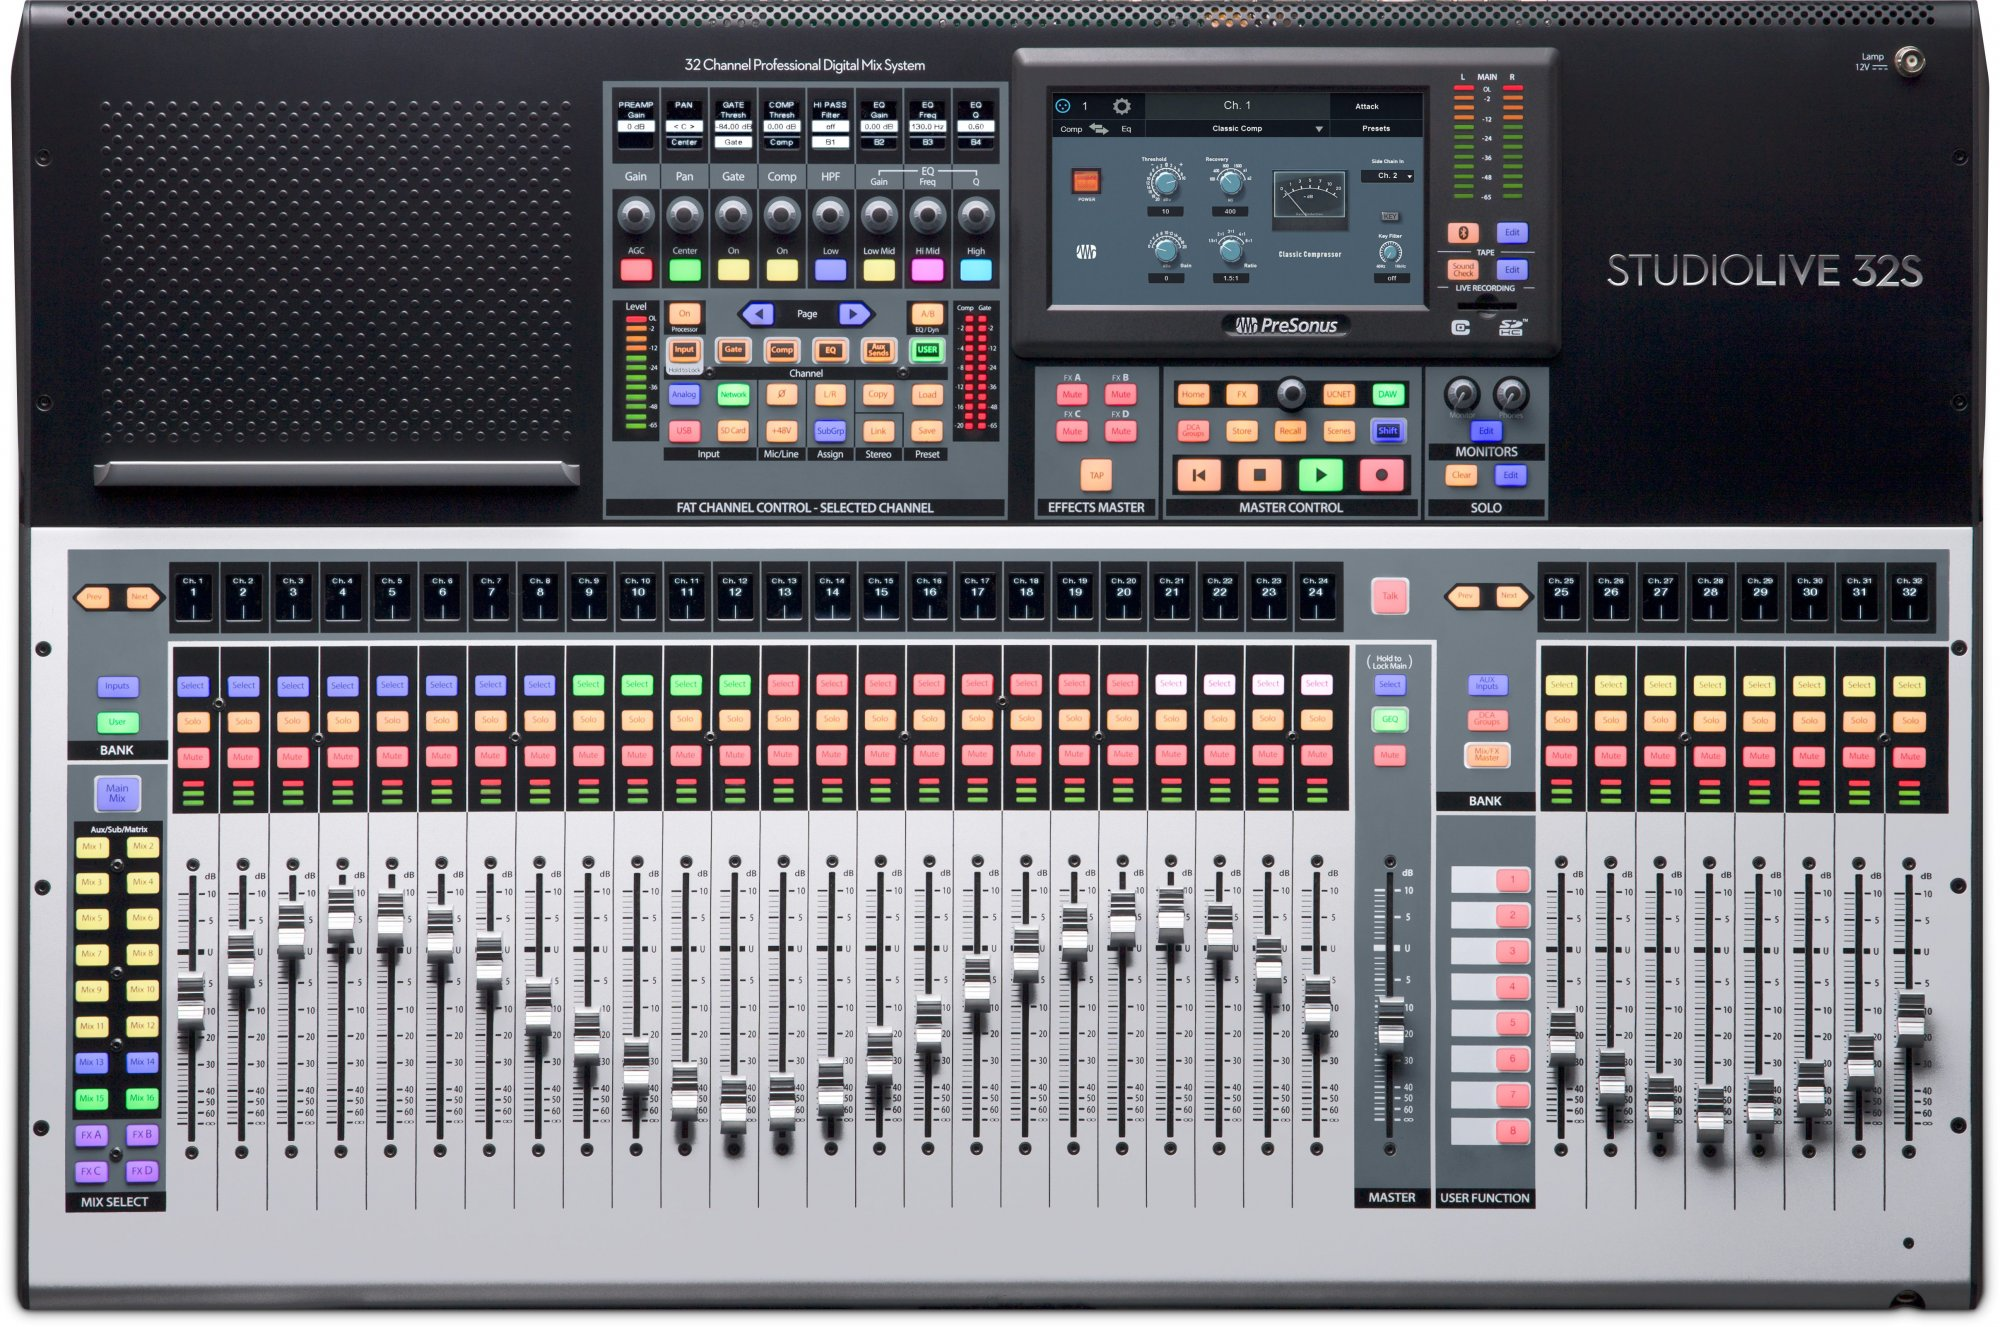 Presonus StudioLive 32S Series III 32-Channel/22-bus digital console/recorder/interface with AVB networking and dual-core FLEX DSP Engine